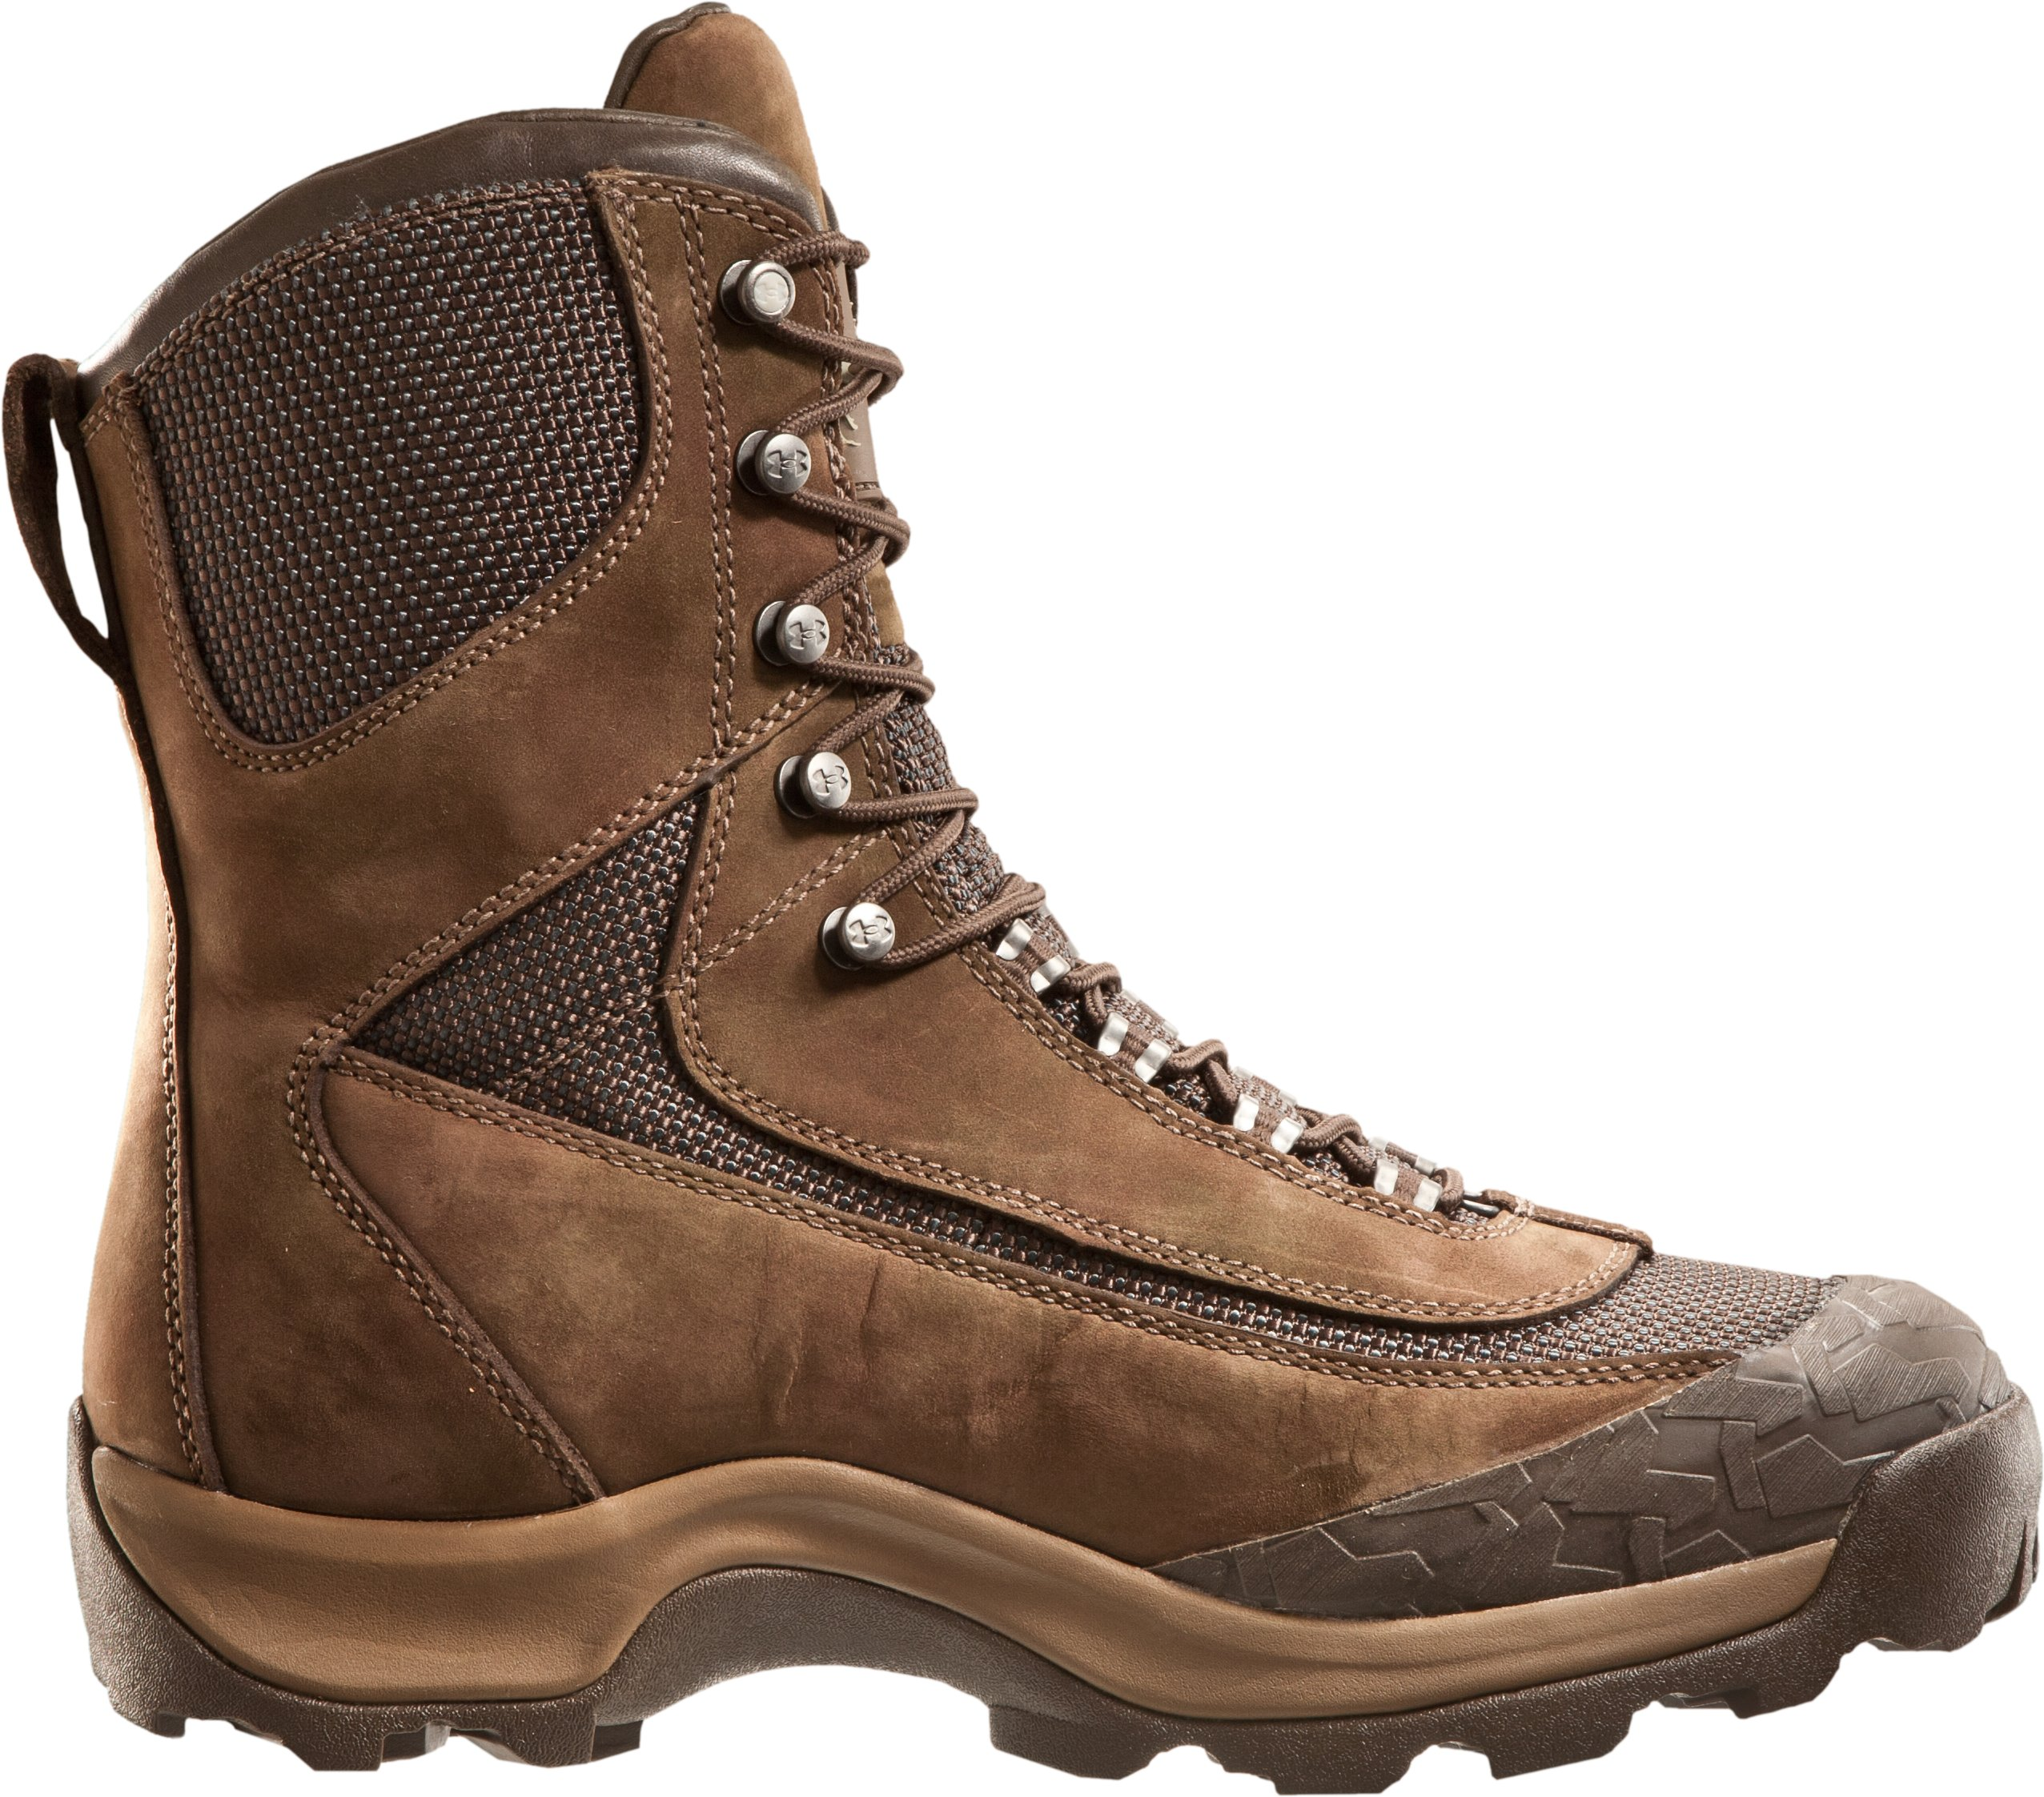 "Men's Ridge Reaper™ 8.5"" Hunting Boots, Slate Brown, undefined"